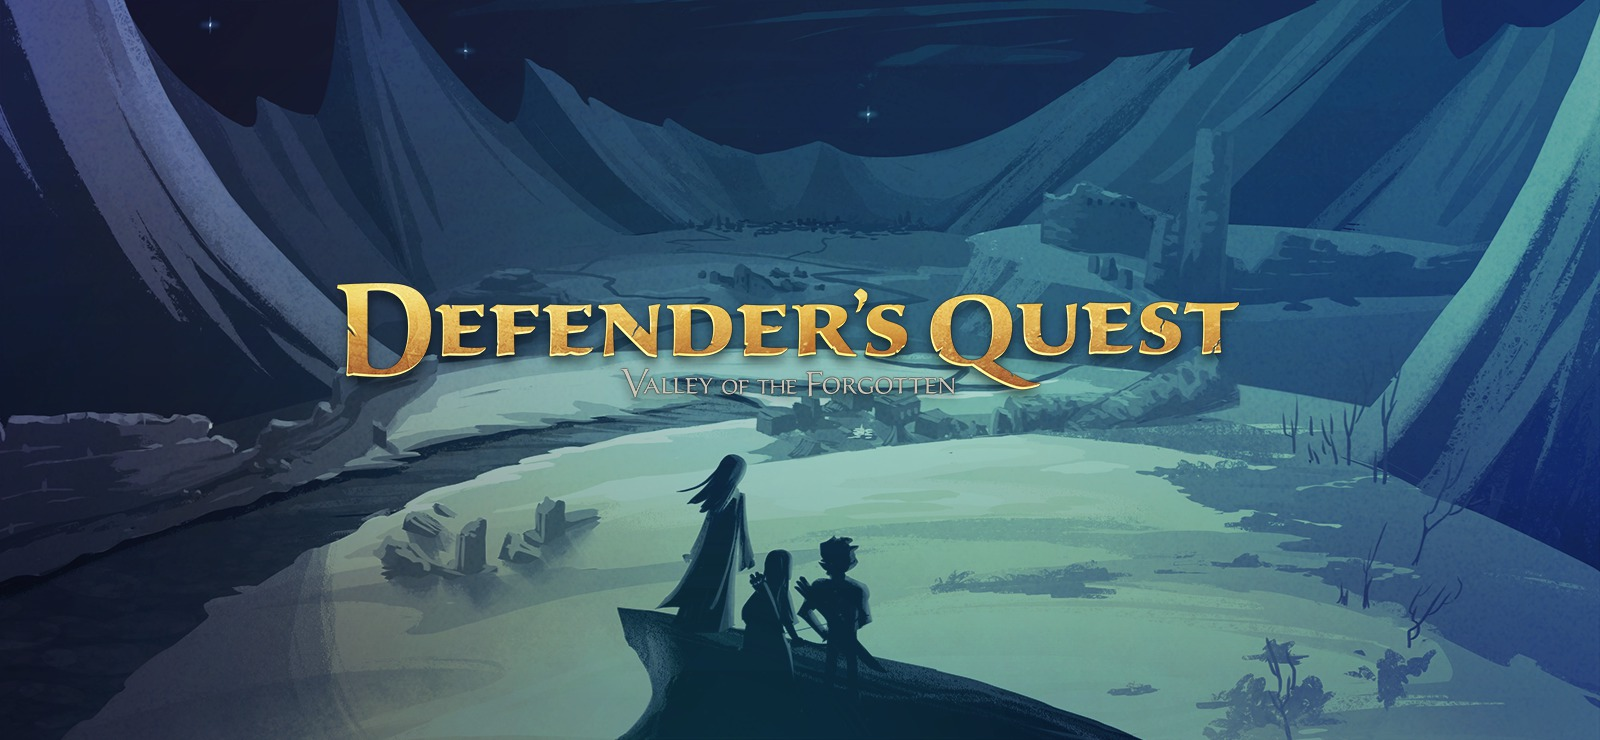 Defender's Quest: Valley of the Forgotten (video game, tower